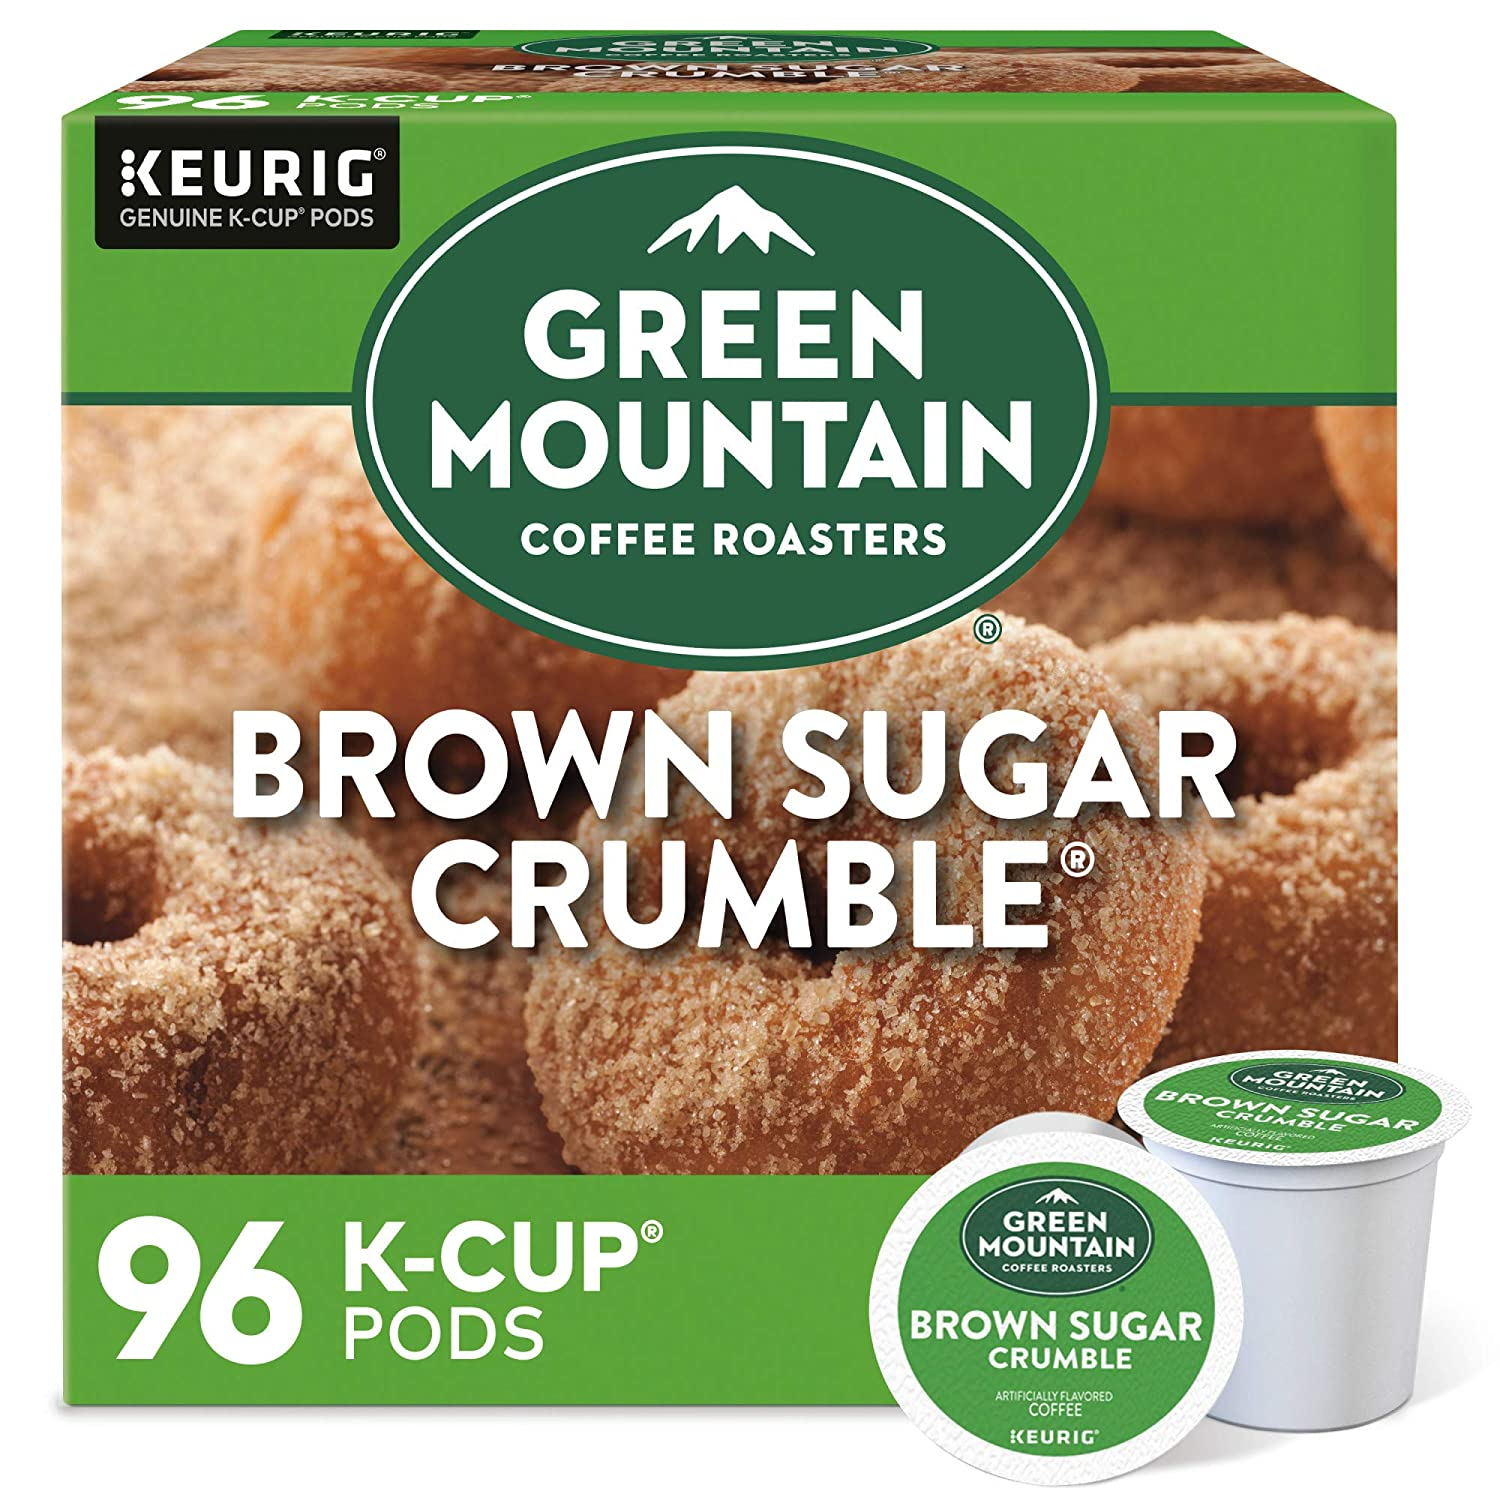 Green Mountain Coffee Brand new Brown Sugar All items in the store Keurig Single-Serve K Crumble